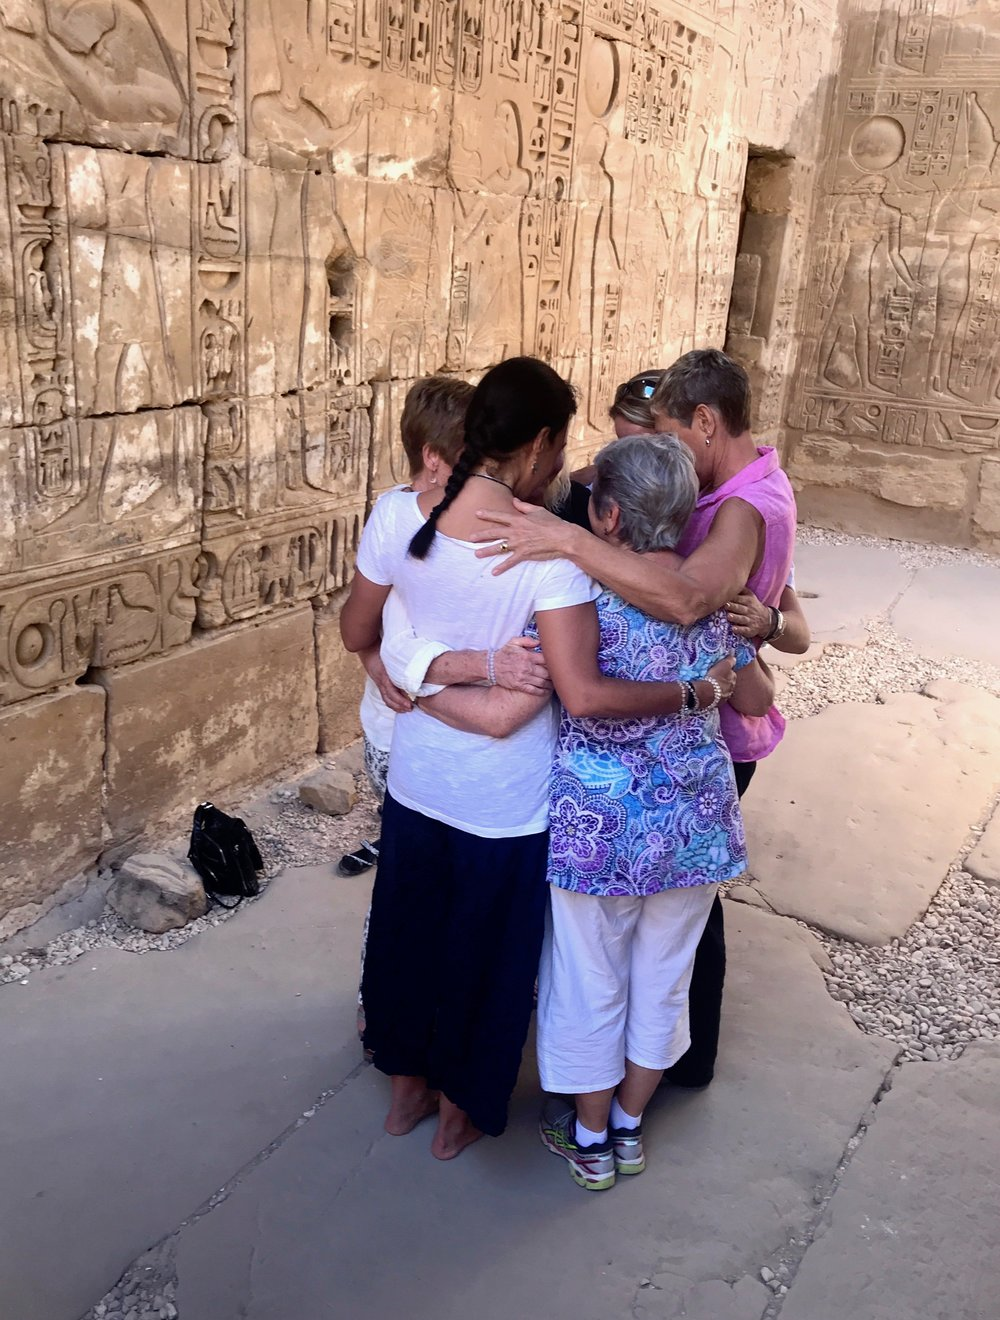 October 2017 Group Hug in Temple of Khonsu at Karnak